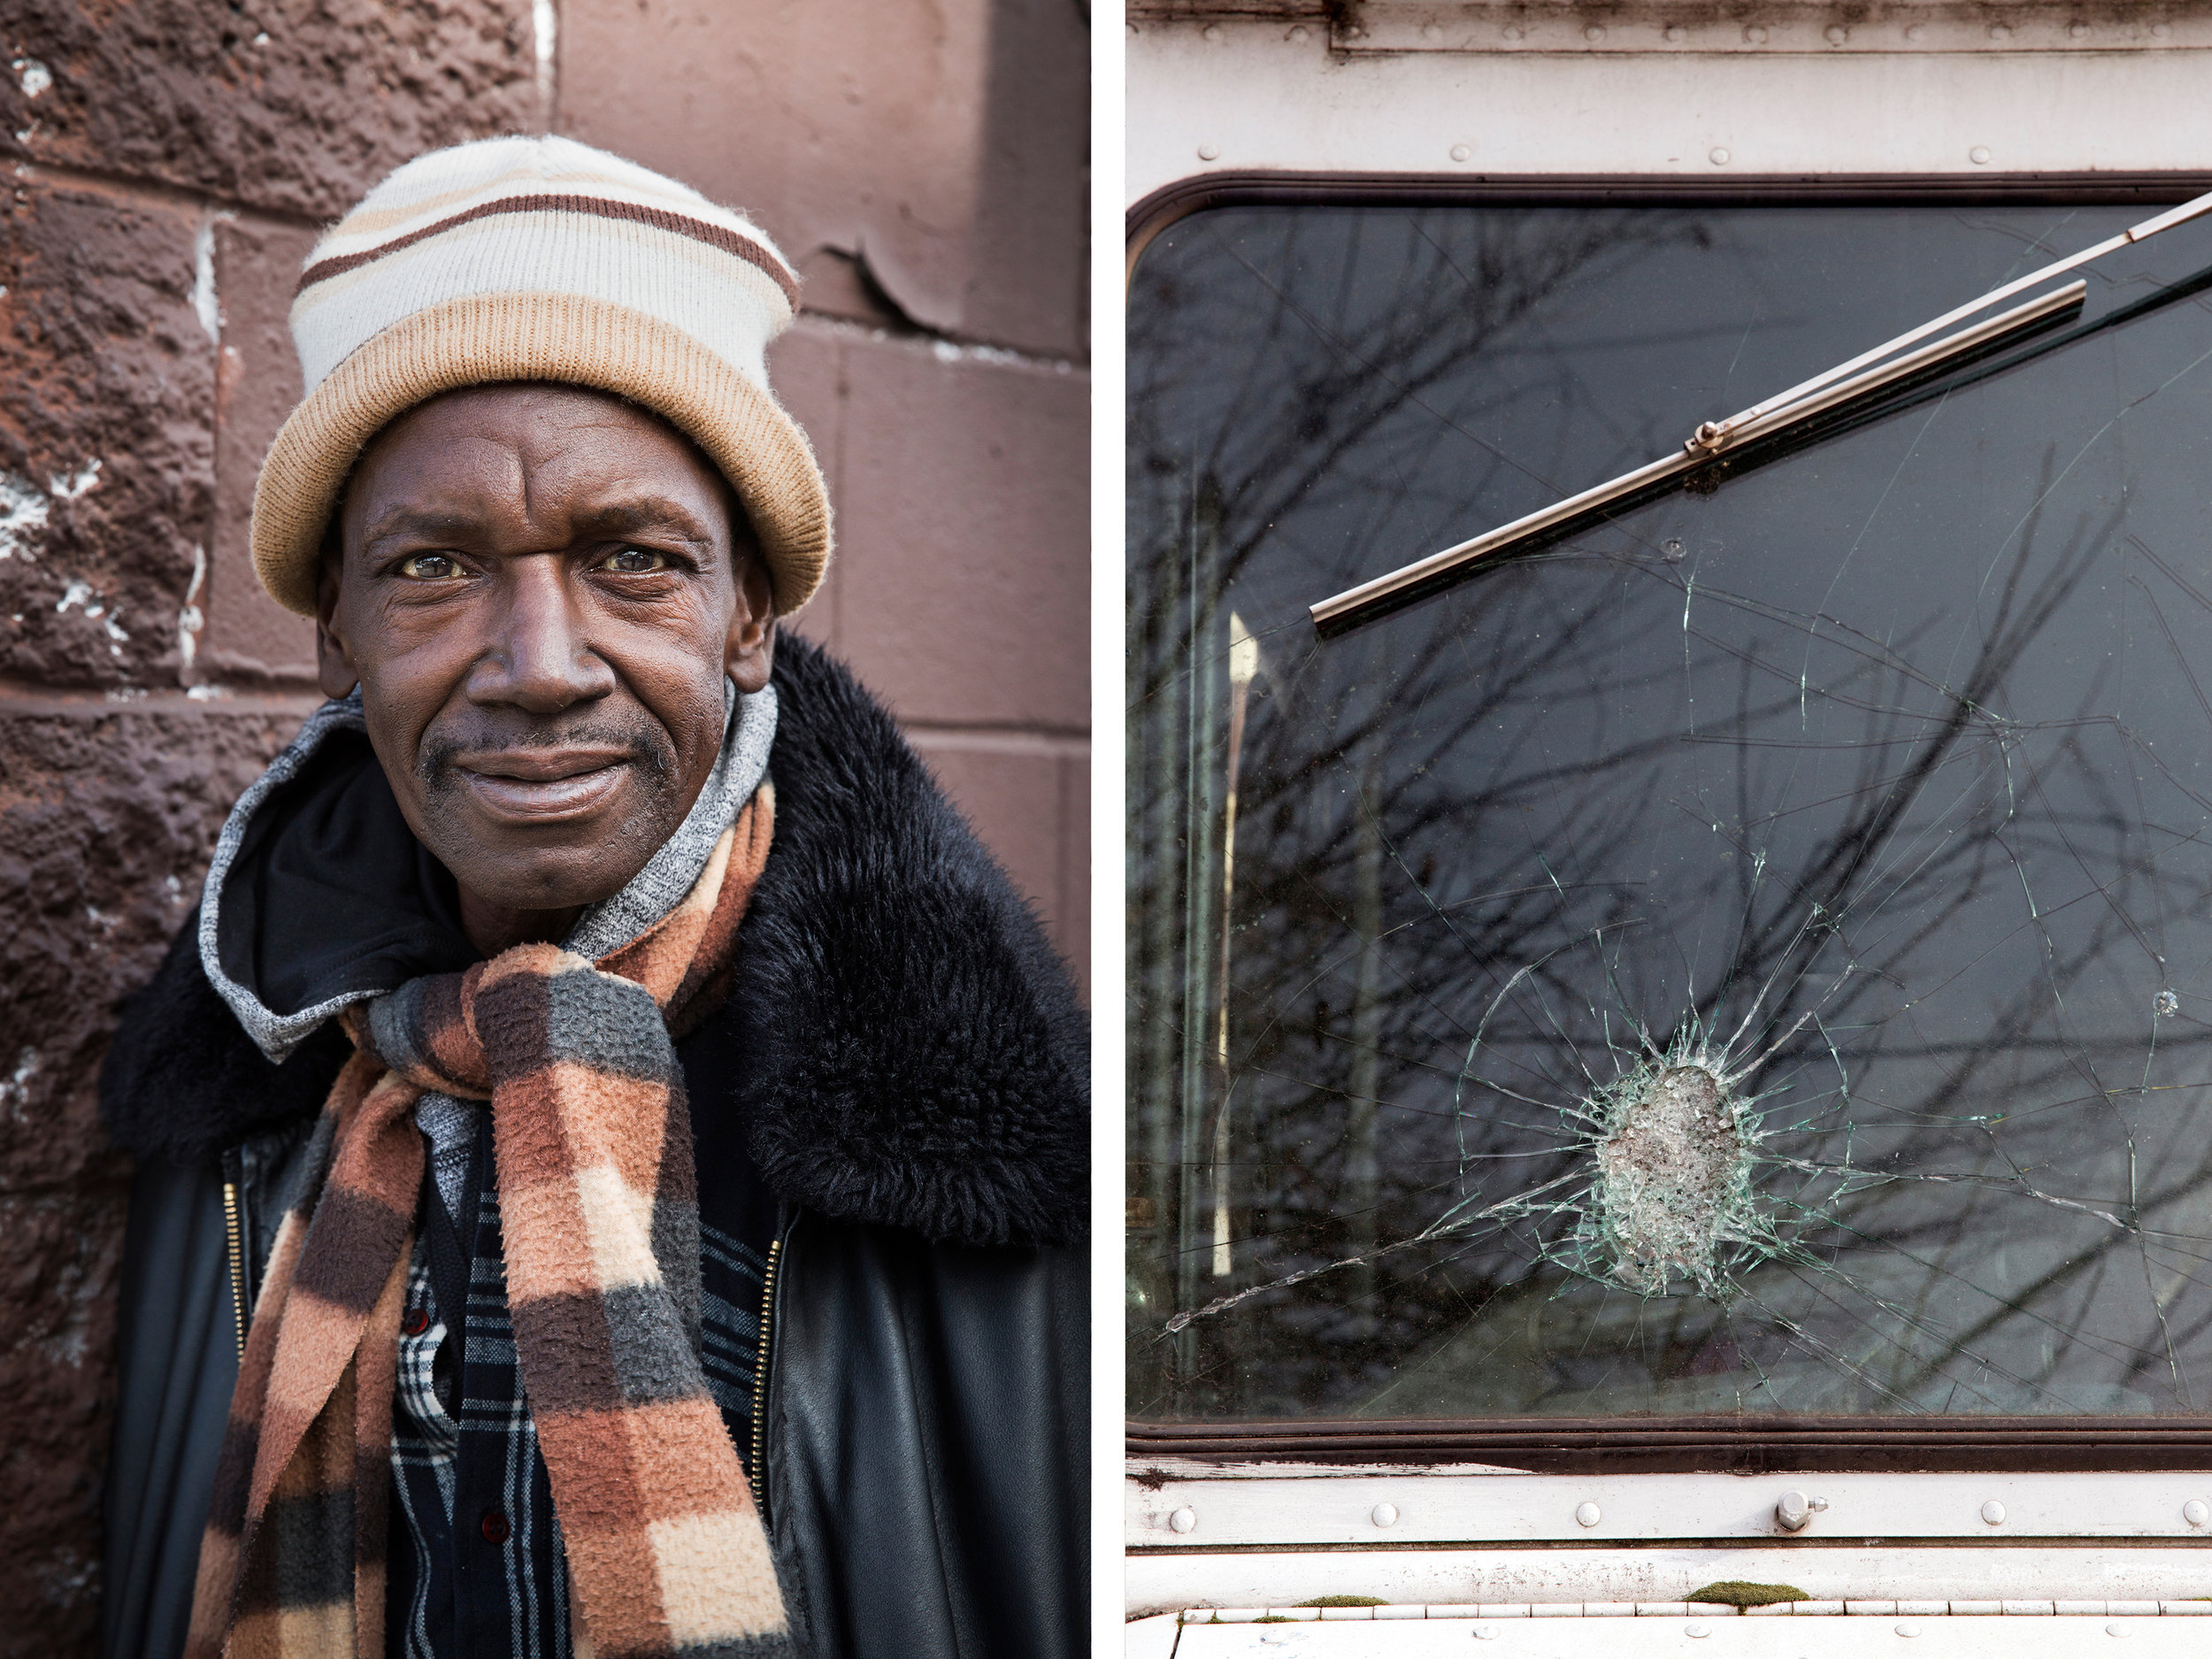 """(Left) Dennis, 62, at 52nd & Market. Dennis contributes by """"helping people."""" He says """"I give out a lot of used clothes."""""""